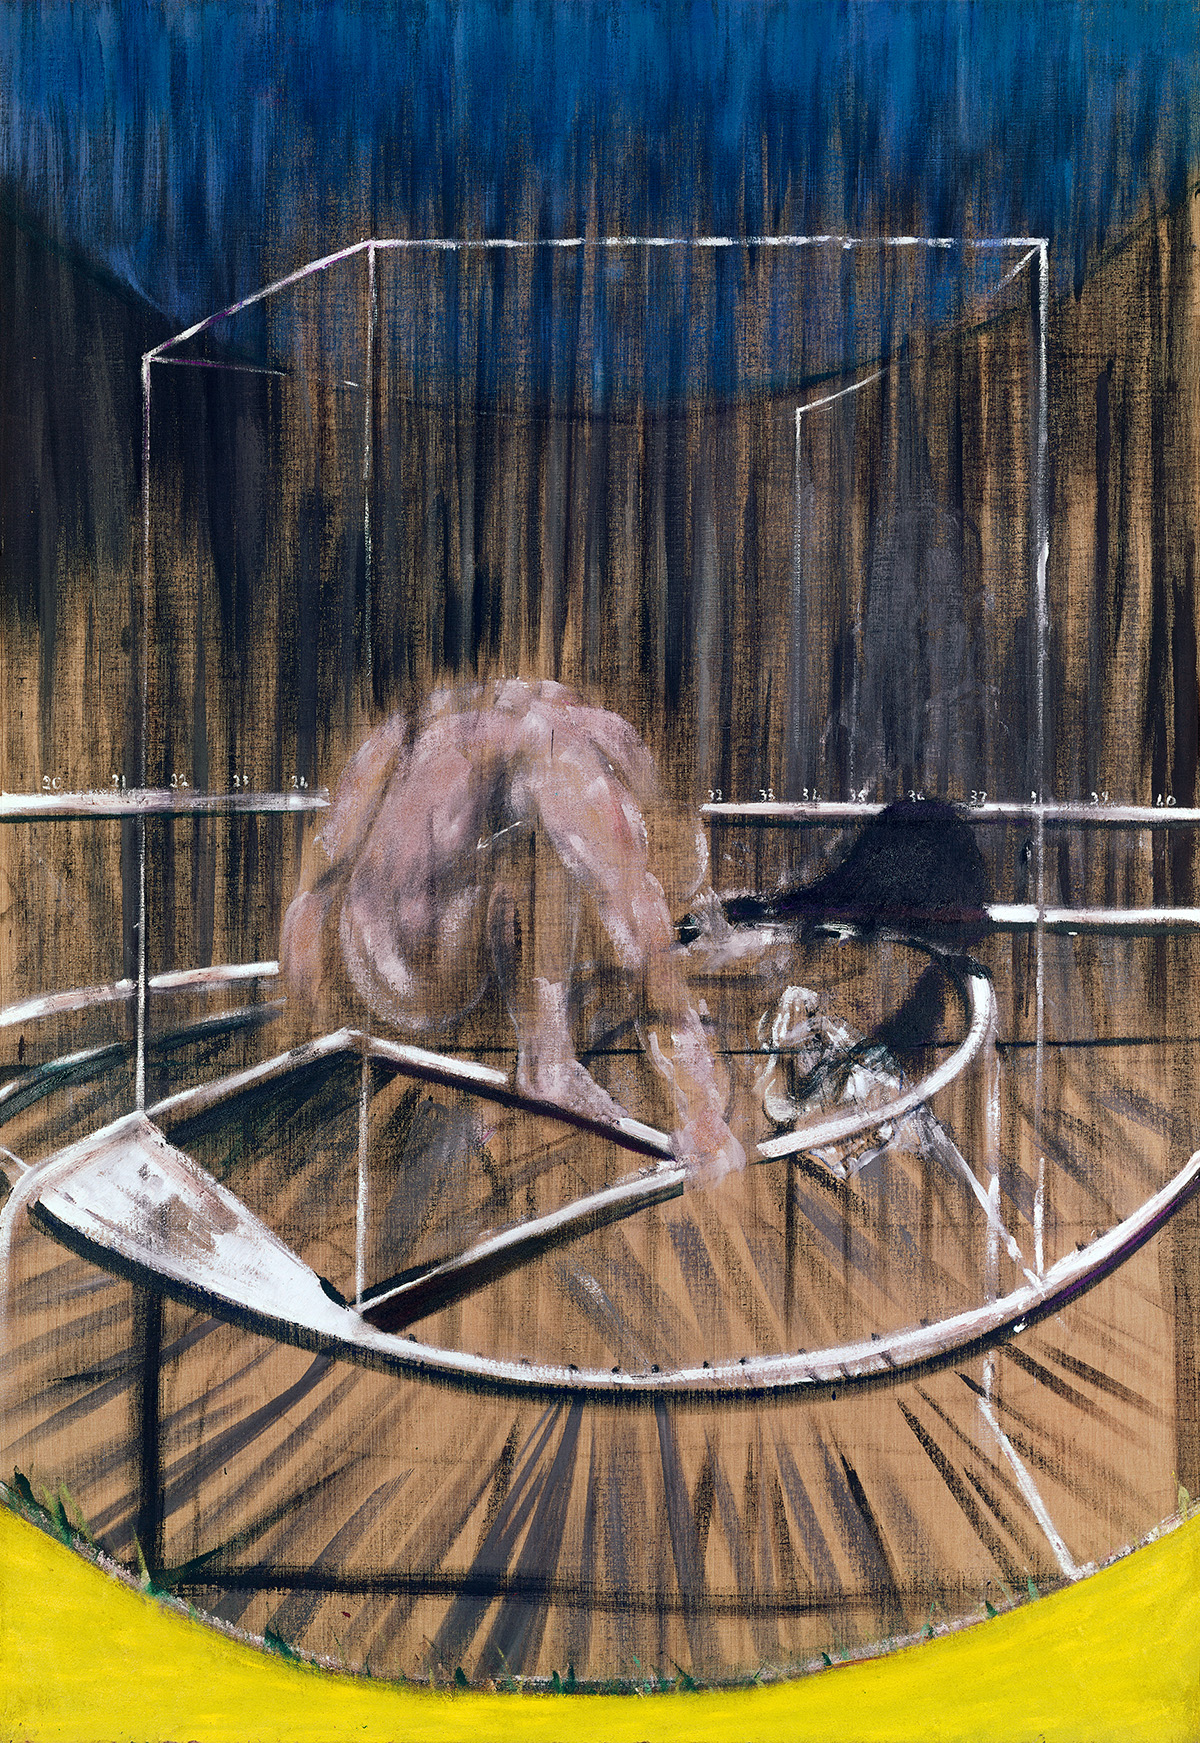 Francis Bacon, Study for Crouching Nude, 1952. Oil on canvas. CR number 52-01. © The Estate of Francis Bacon / DACS London 2020. All rights reserved.